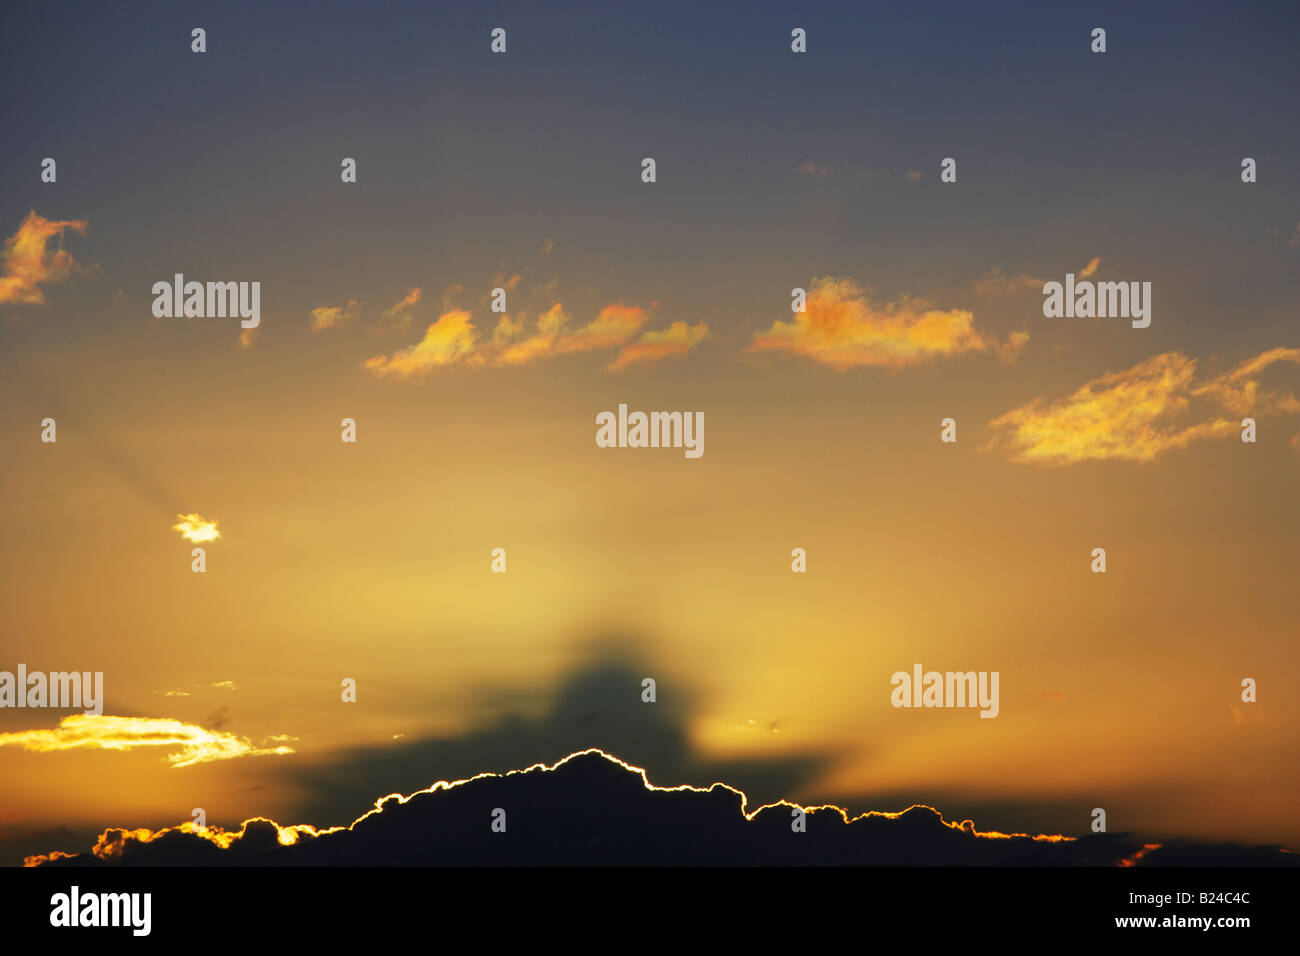 Sun going down behind large cloud causing silver lining and dramatic sky Sydney Australia - Stock Image